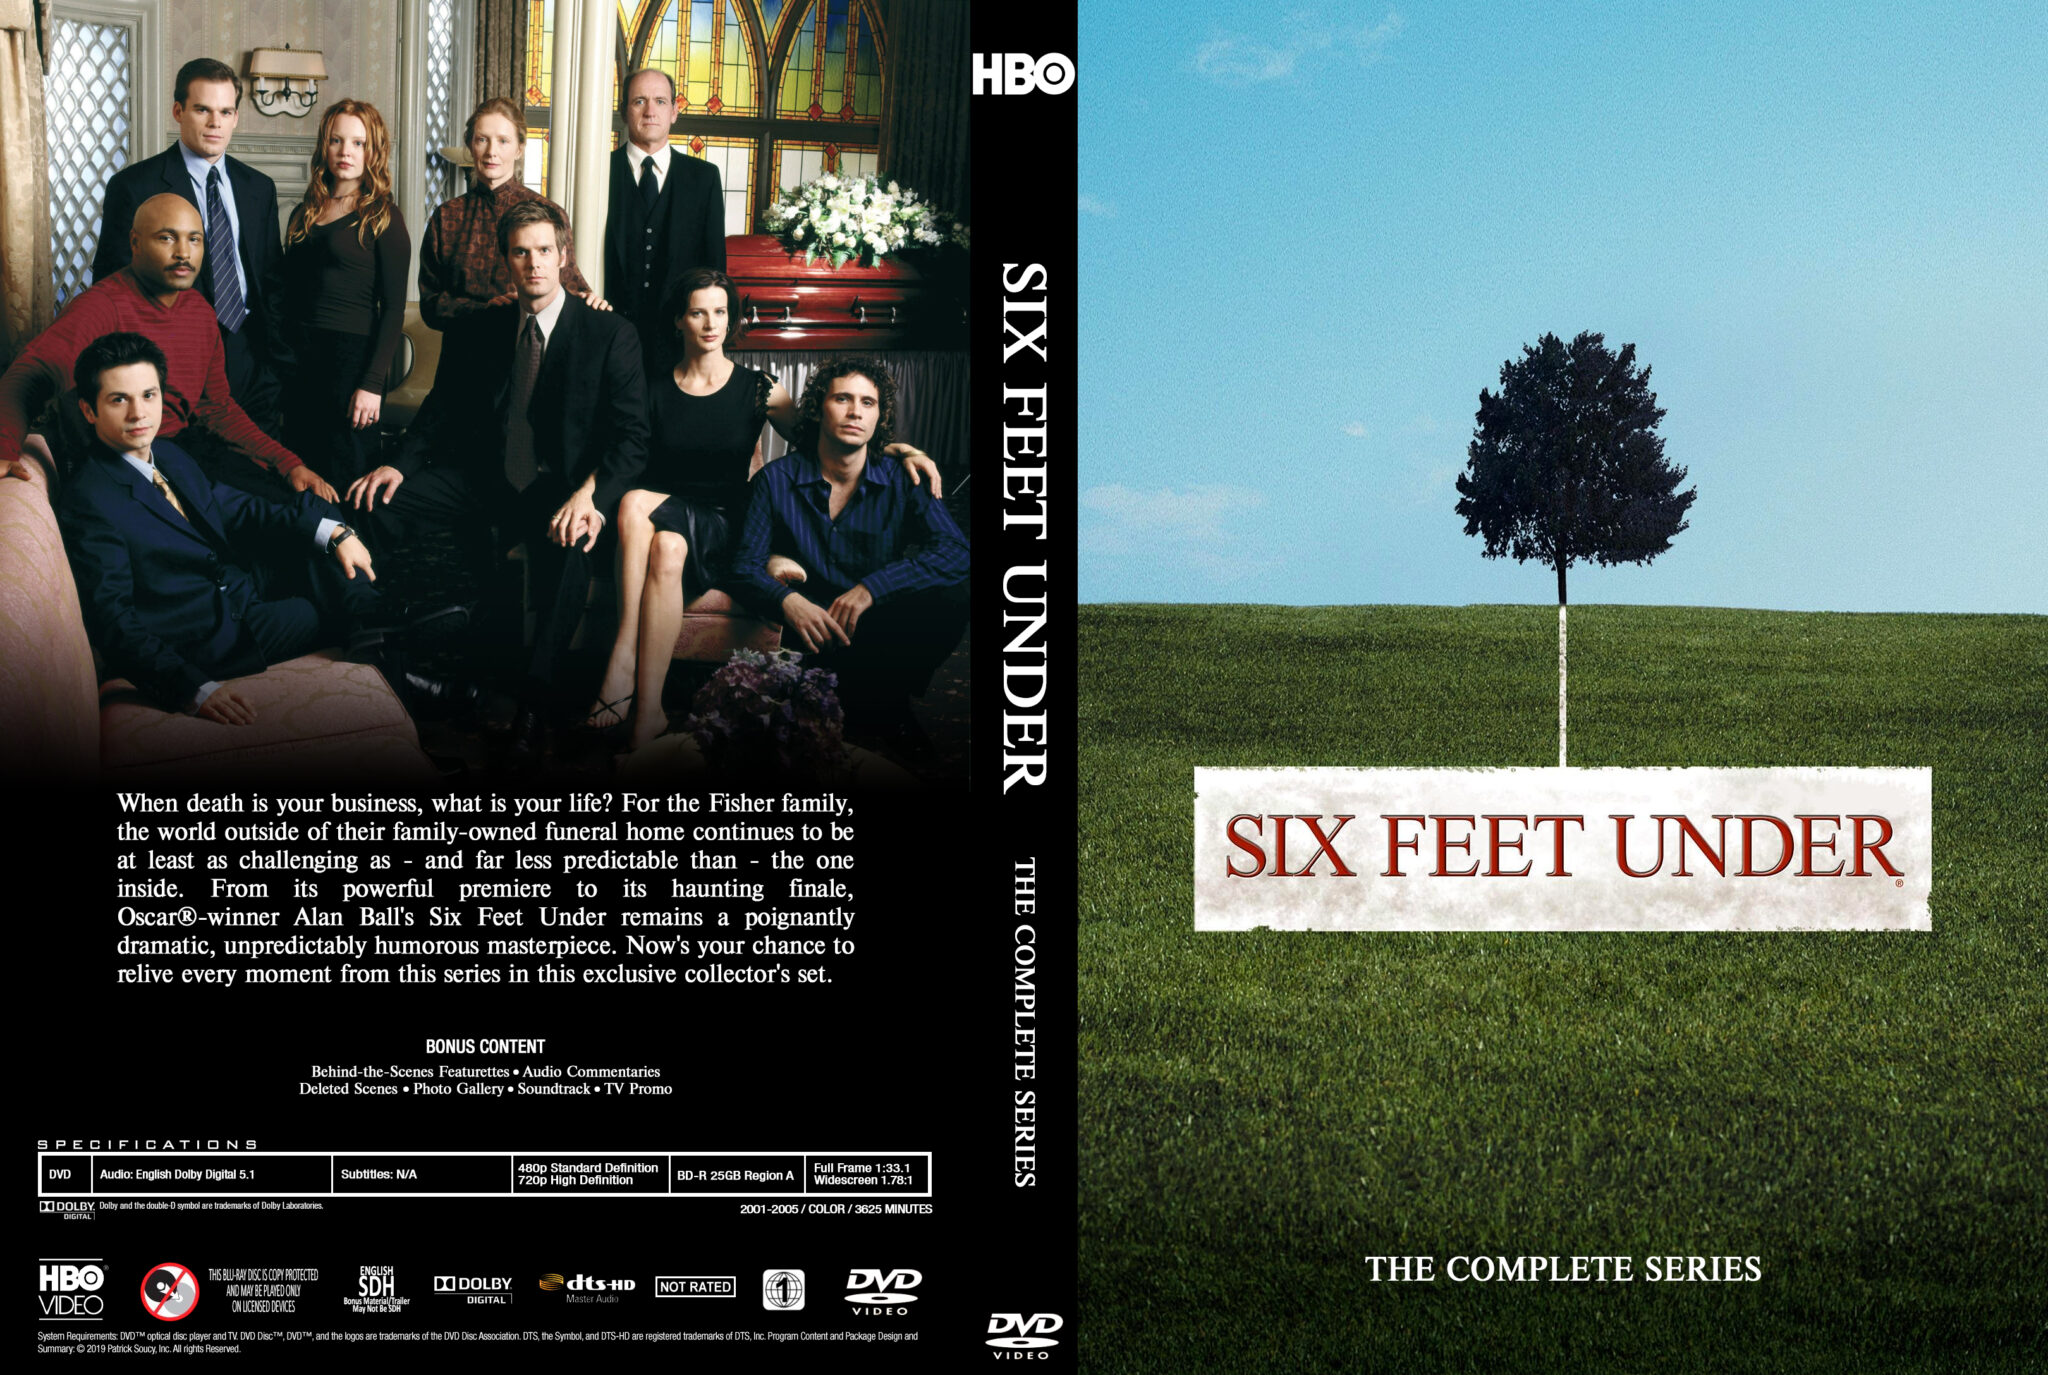 Six Feet Under (2001-2005, 63 episodes over 5 seasons, HBO)- Thescriptblog.com